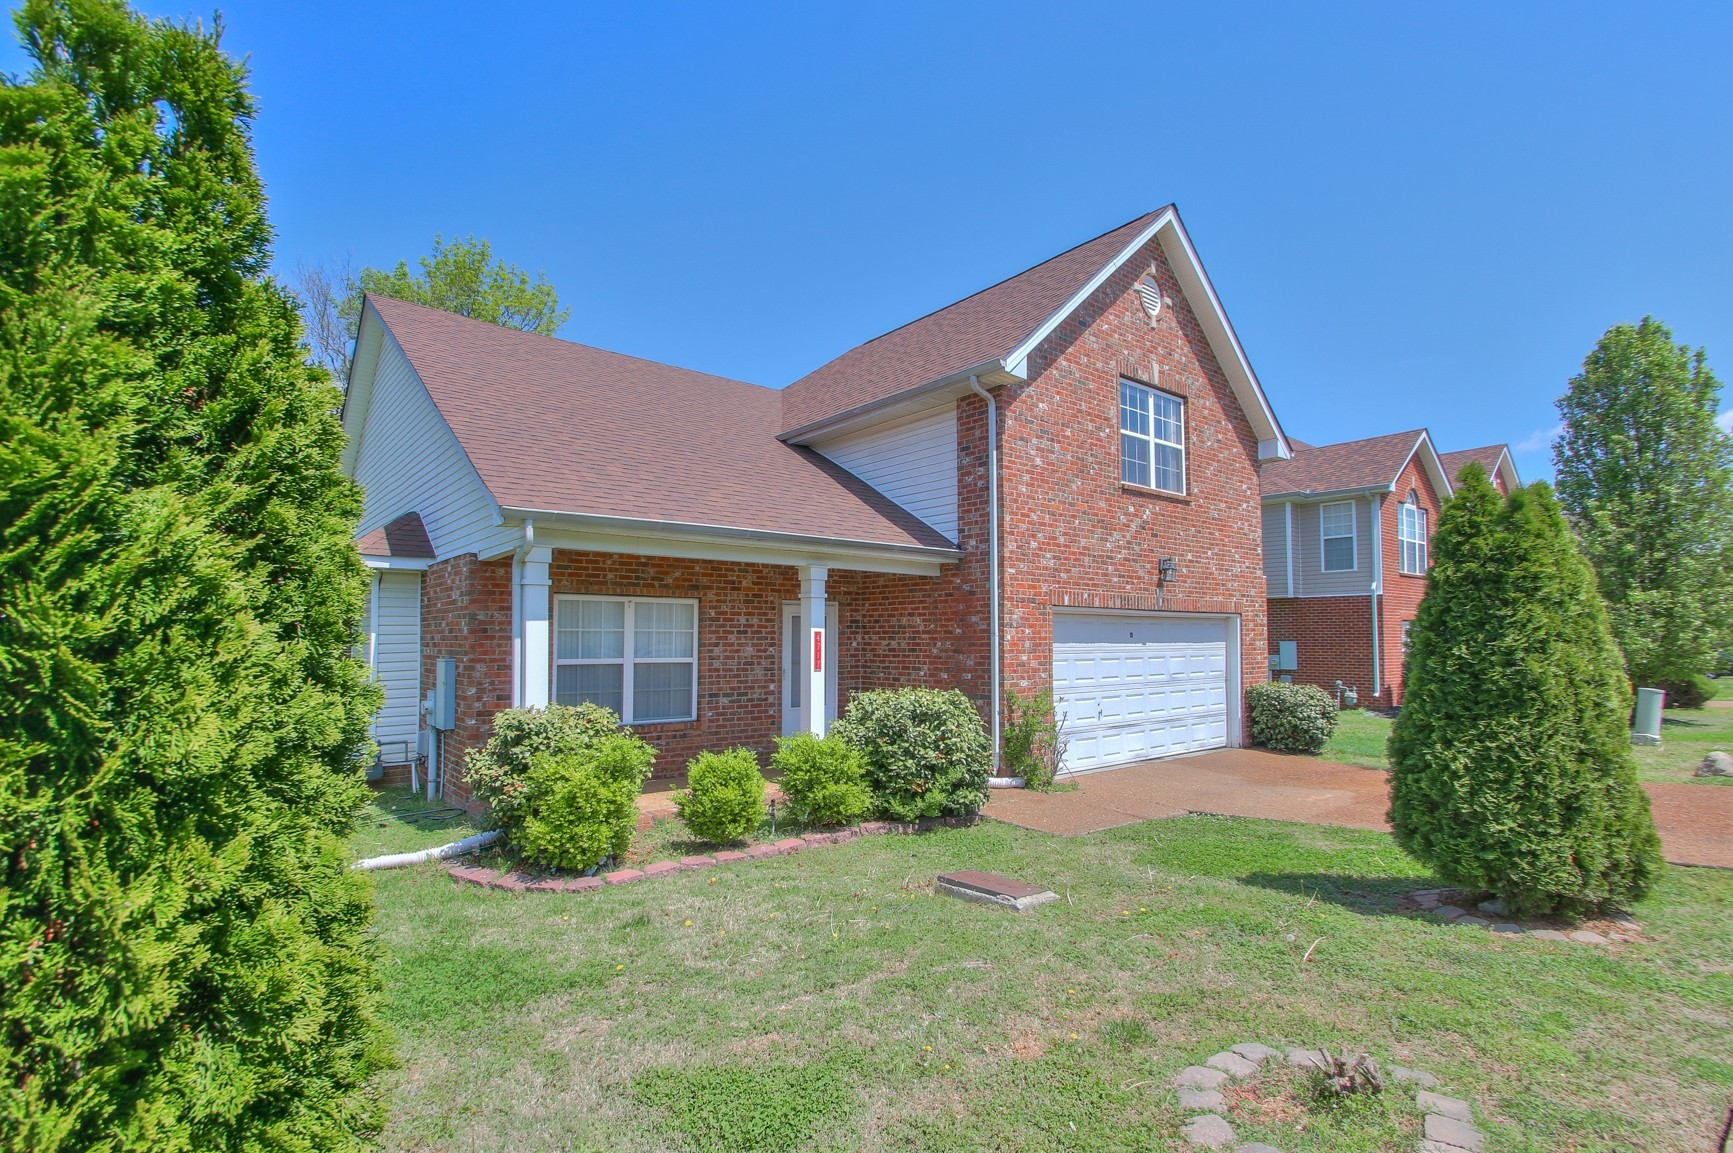 4717 Rockland Trl Property Photo - Antioch, TN real estate listing